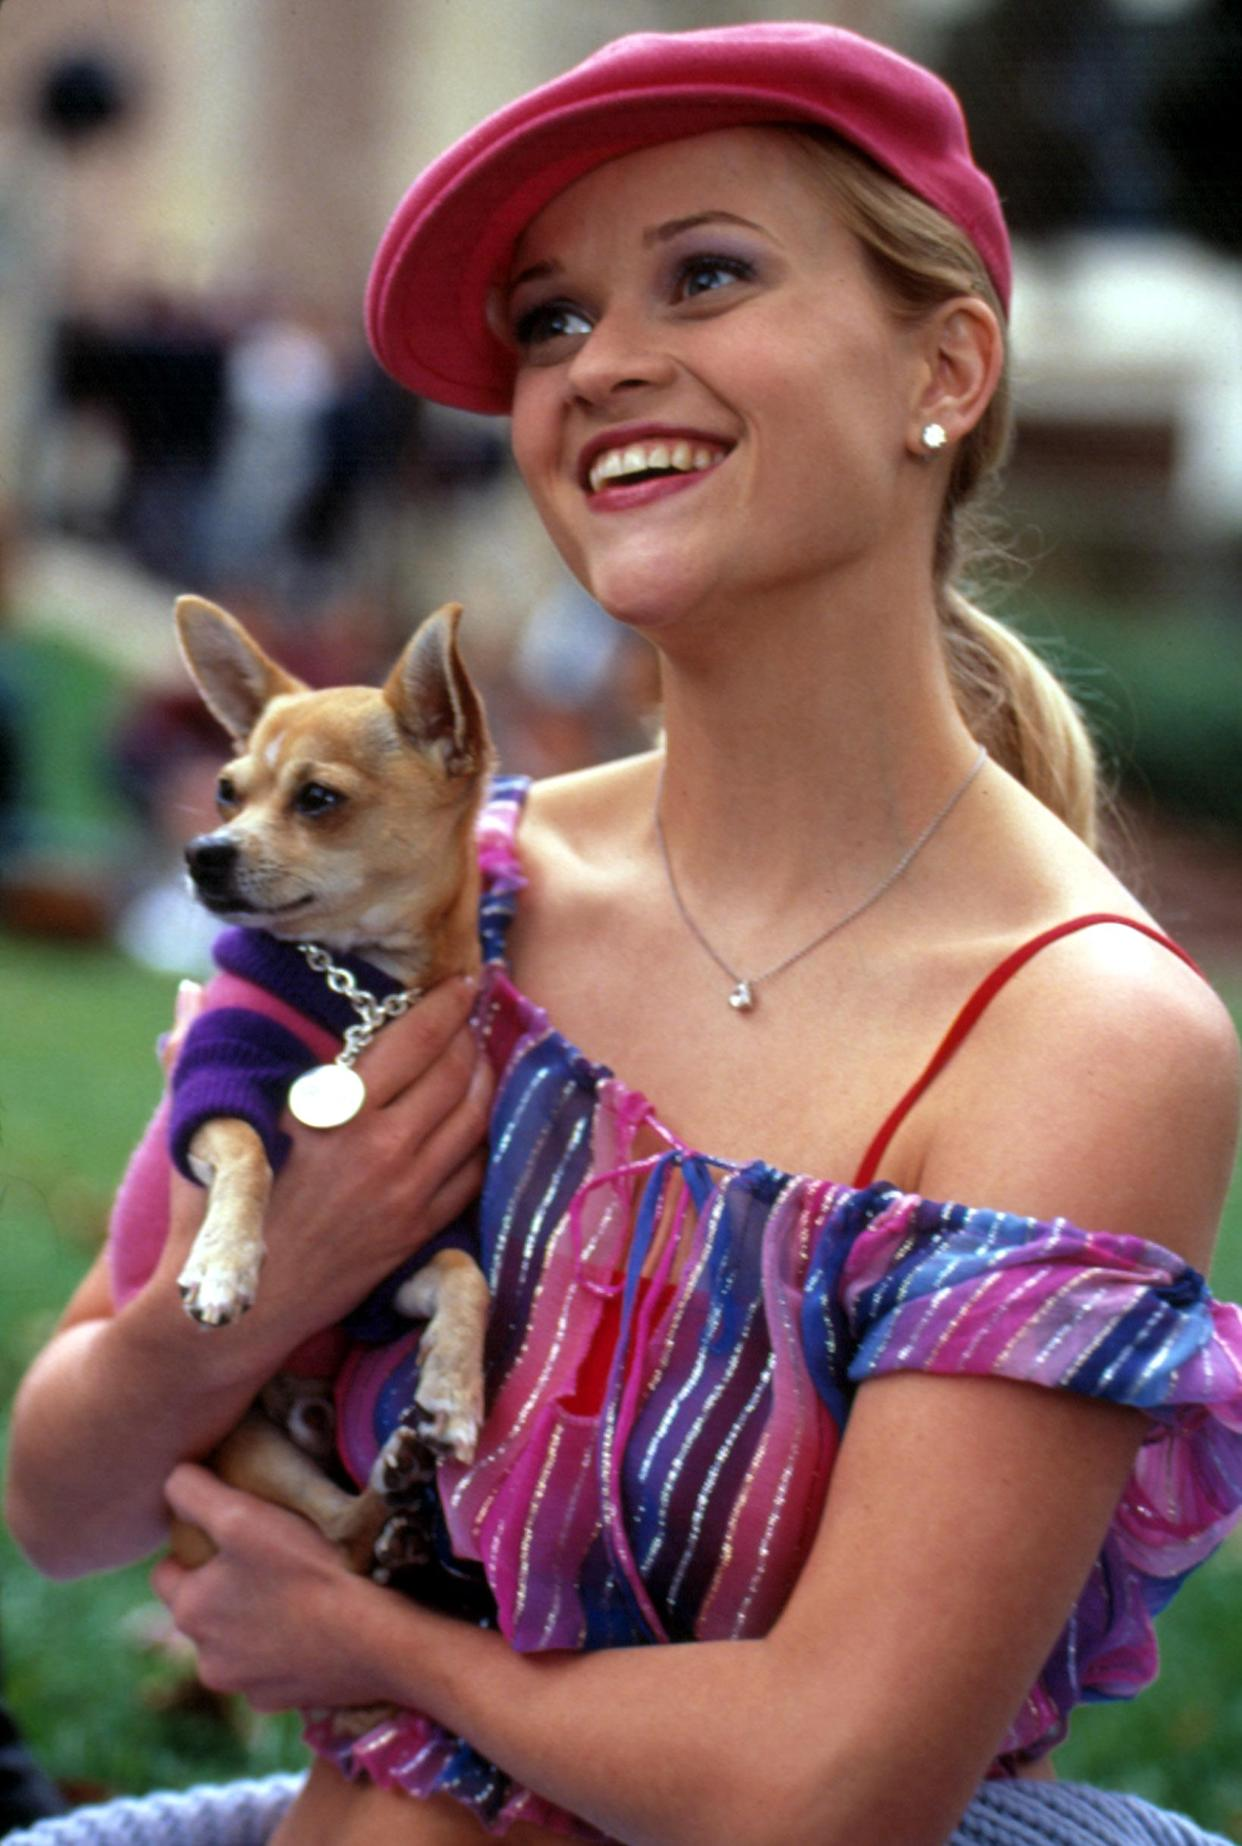 Reese Witherspoon plays Elle Woods in